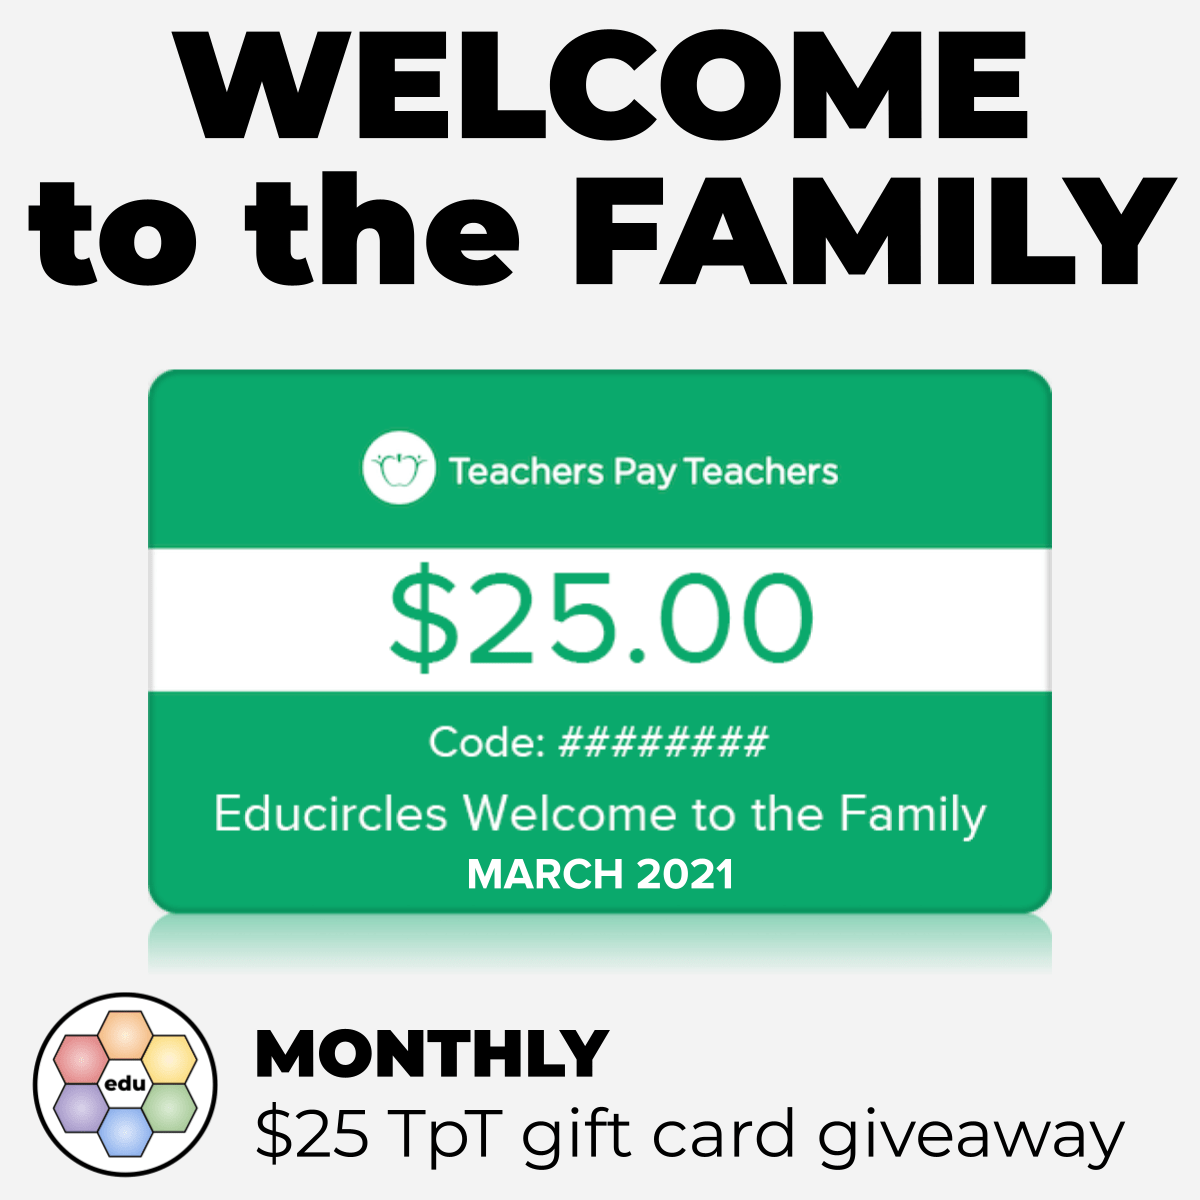 Welcome to the family - Monthly $25 TpT gift card giveaway - March 2021